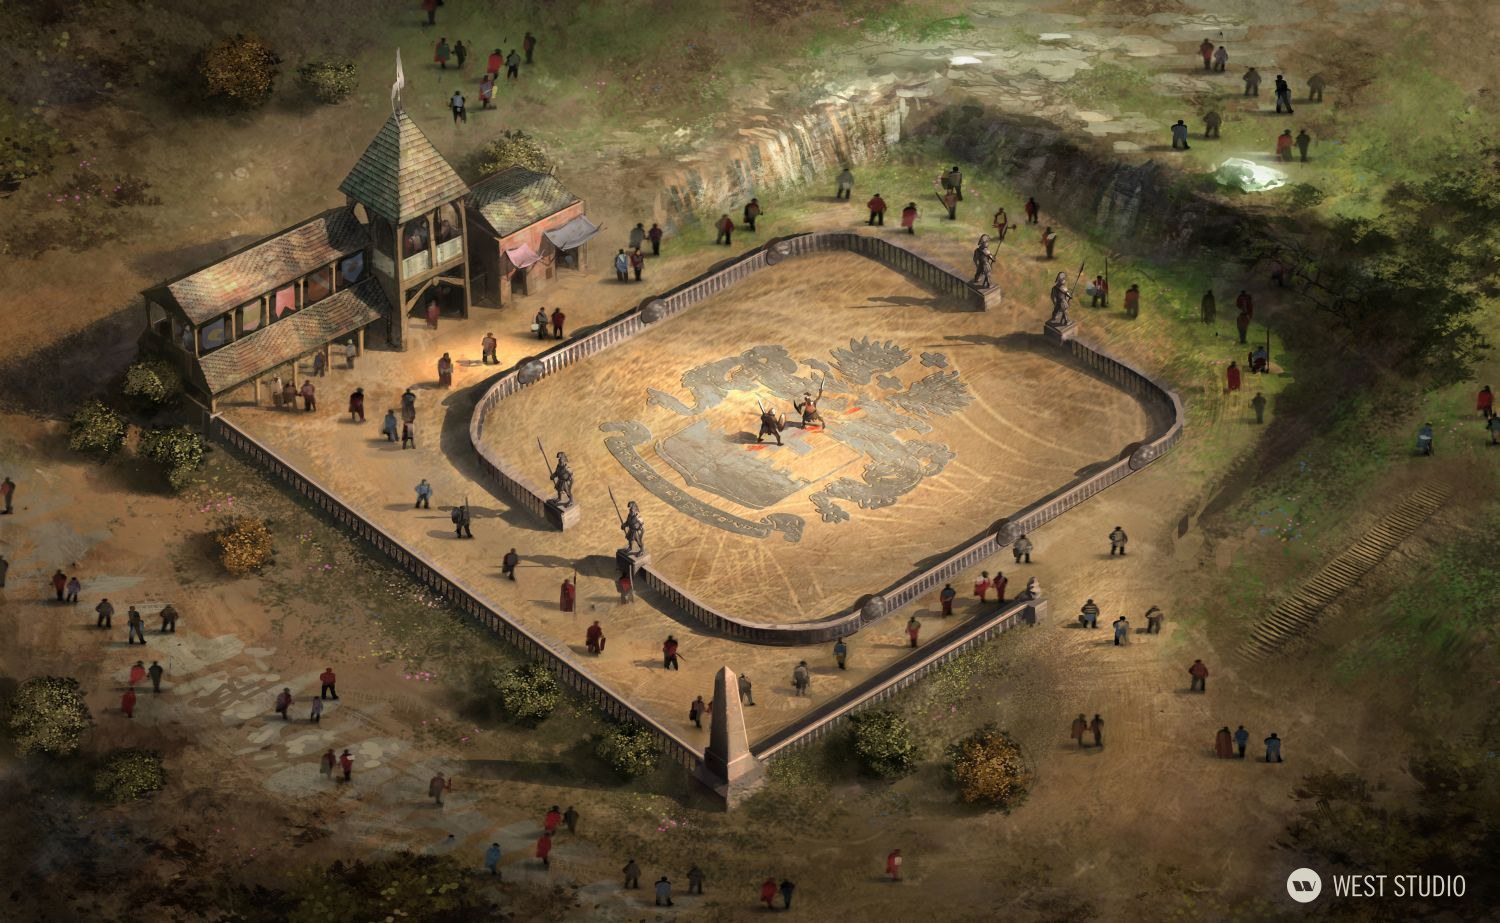 Lineage II, Fantasy, Korean Game Dev, NCSOFT, Concetp Art, Environment Concepts, Aerial view